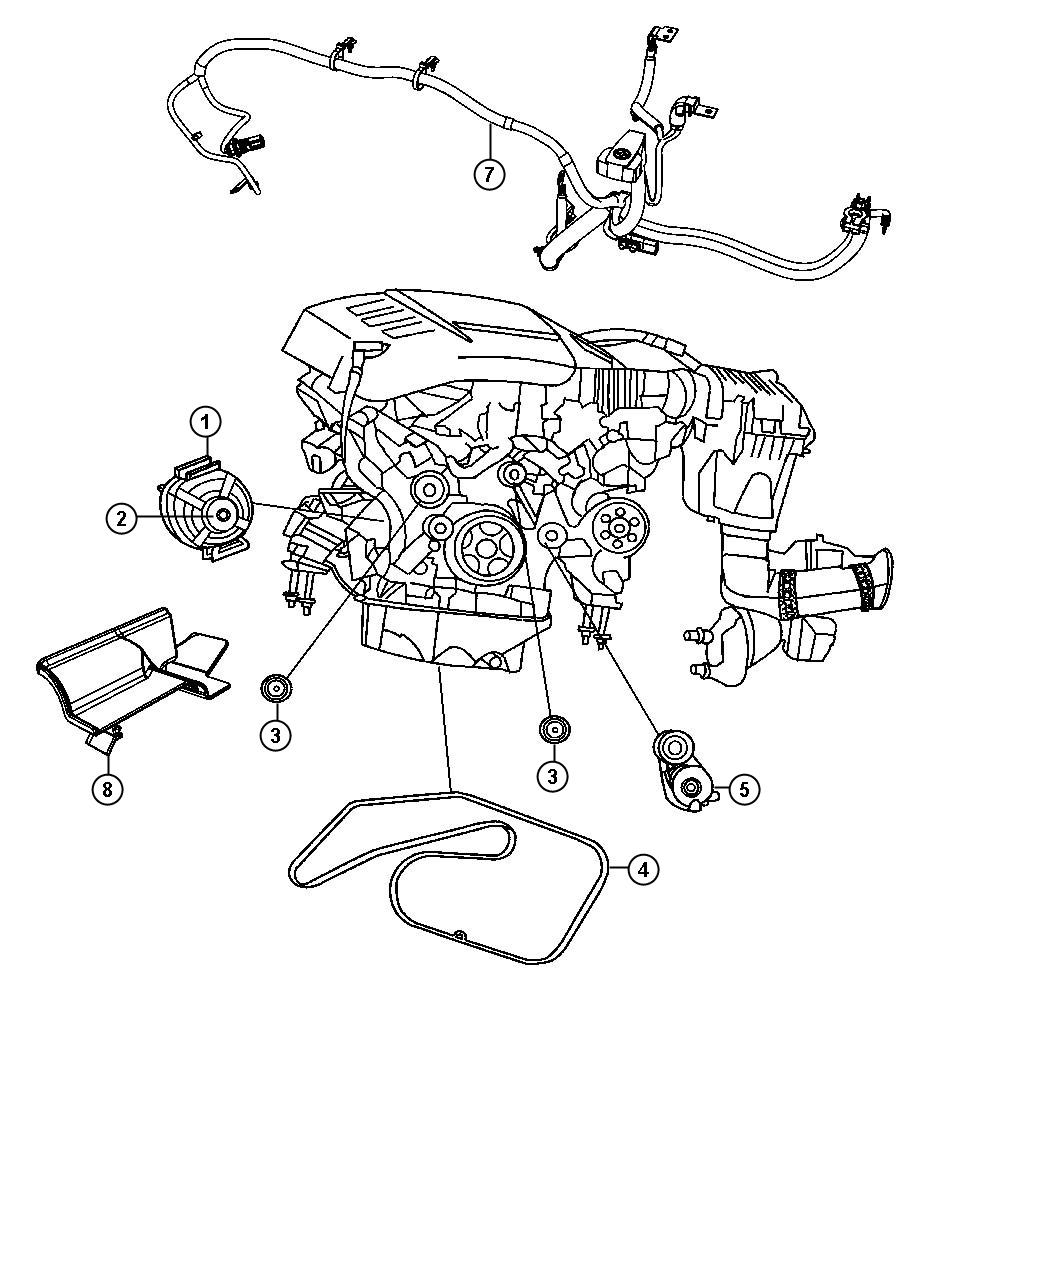 tags: #automotive alternator wiring#delco alternator wiring diagram#4 wire  alternator wiring diagram#ford 3 wire alternator diagram#delco alternator